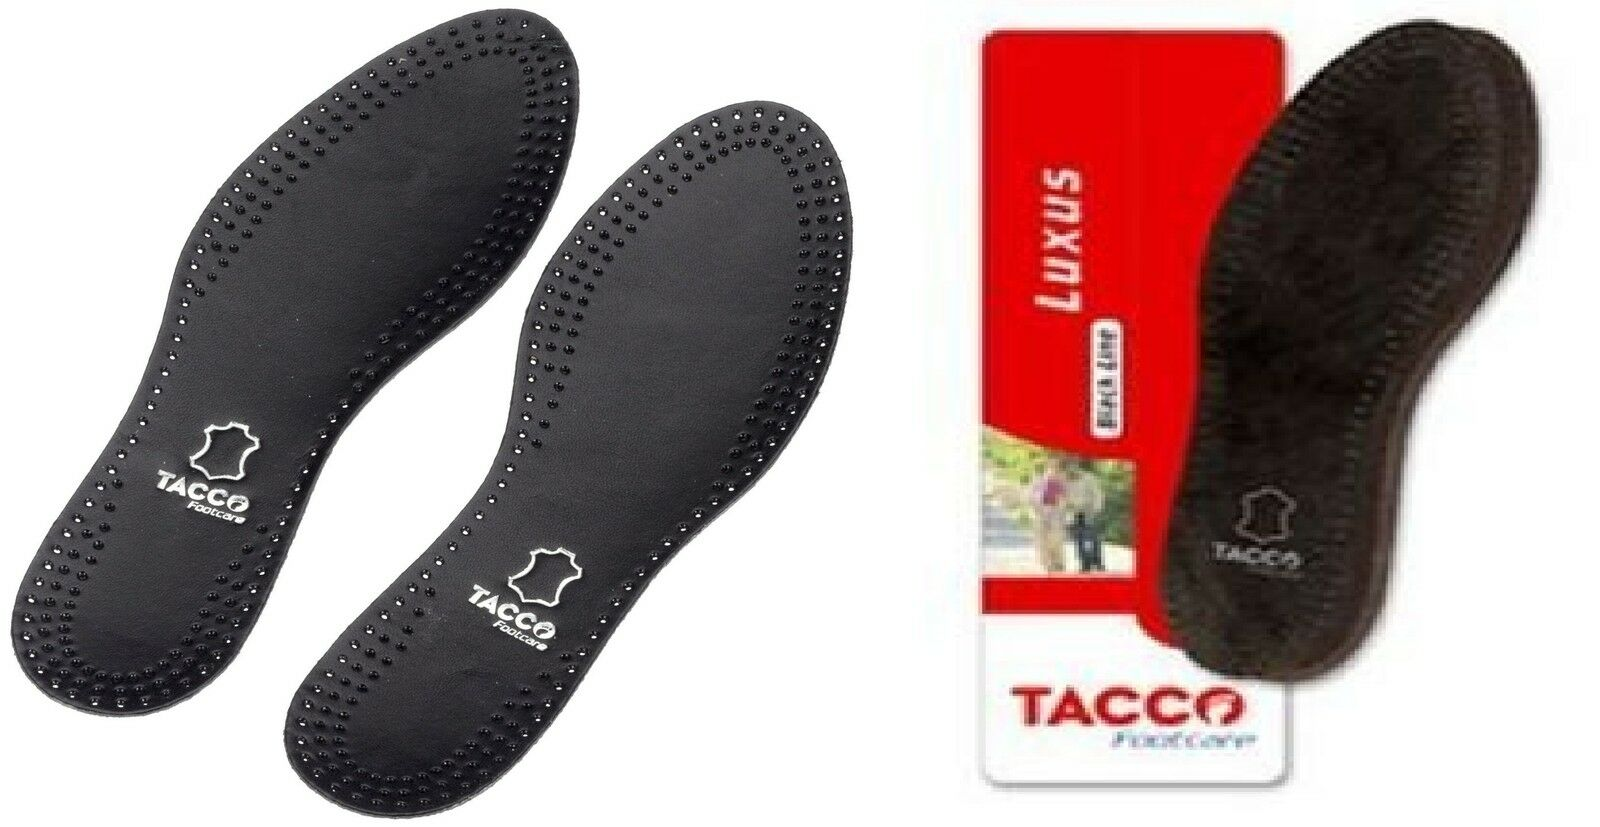 tacco 713 luxus black orthotic arch support leather